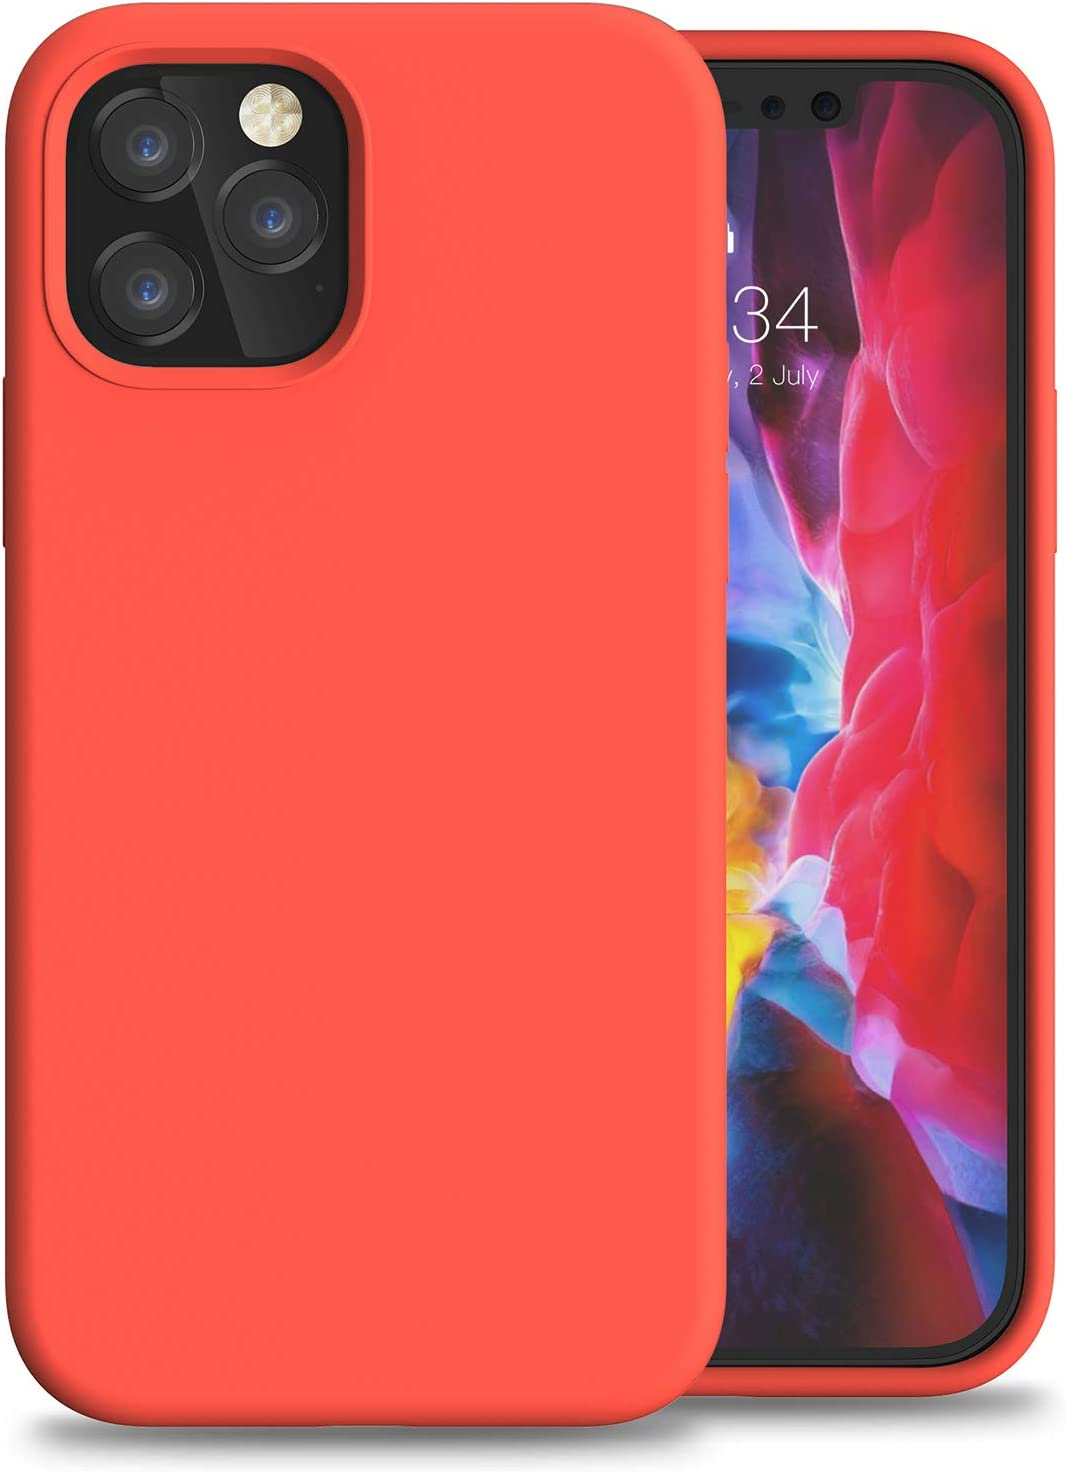 """Anyos Compatible with iPhone 12/12 Pro Silicone Case 6.1"""", Liquid Silicone Gel Rubber Full Body Protection Shockproof Drop Protection Phone Case with Soft Anti-Scratch Microfiber Lining, Coral Red"""